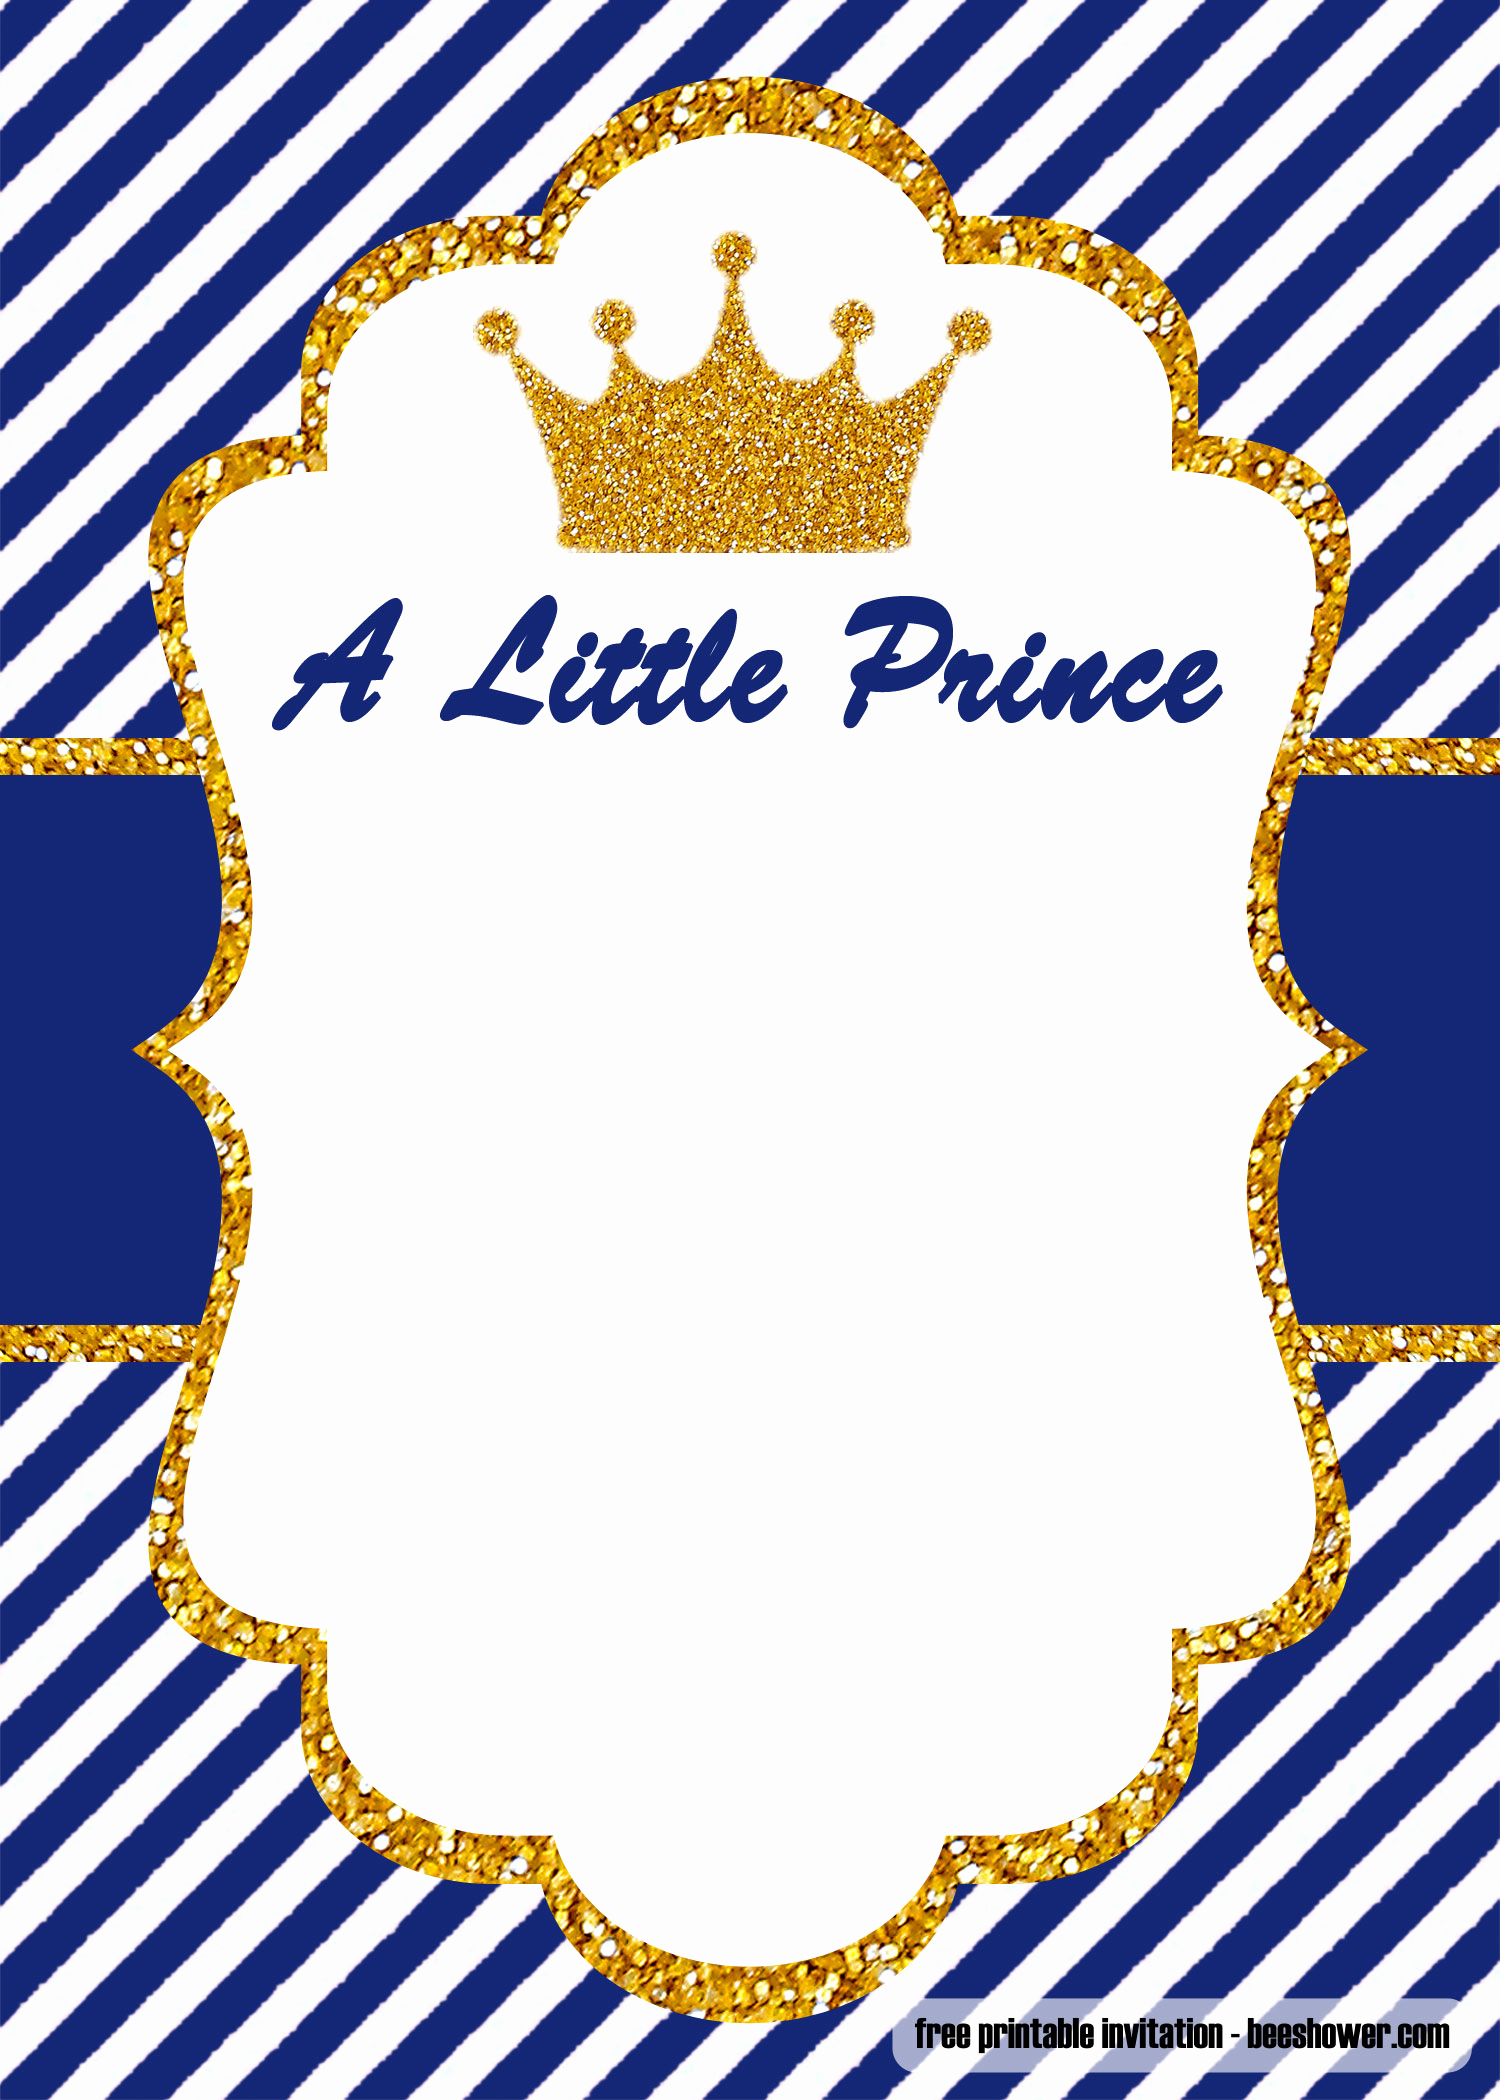 Royal Baby Shower Invitation Templates Best Of Free Prince Baby Shower Invitations Templates